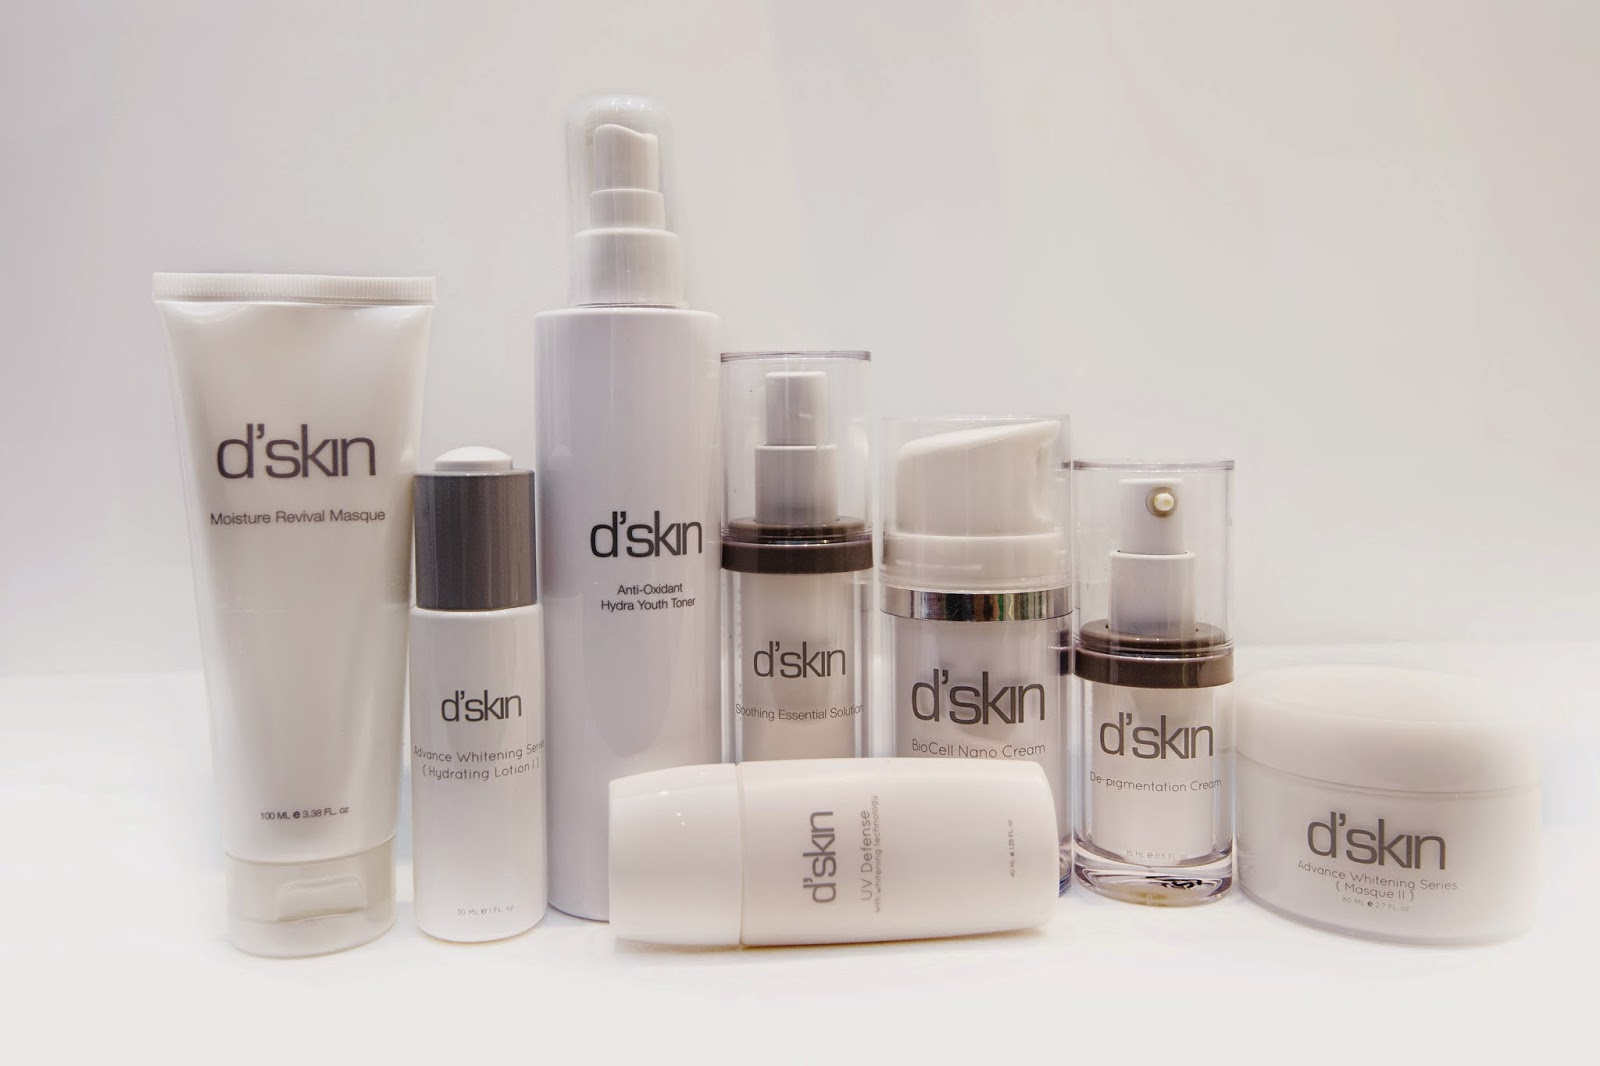 d'skin product review